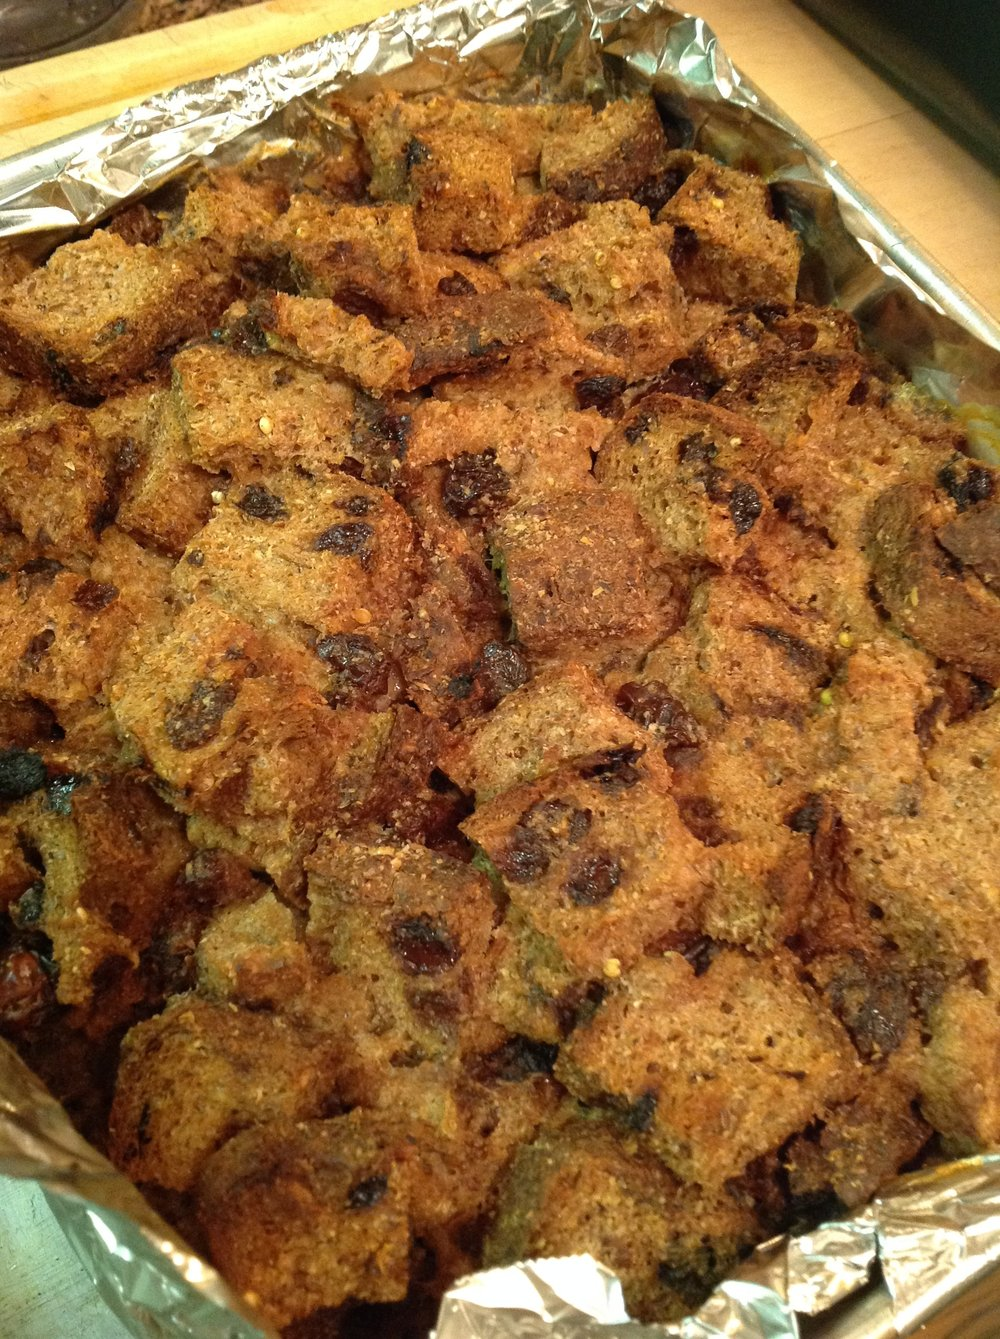 Chef's Baking Tip:  You can assemble this bread pudding the day before a brunch.  Simply bake in the oven about an hour before you want to serve.  This will make the ultimate, plant-based vegan brunch dish